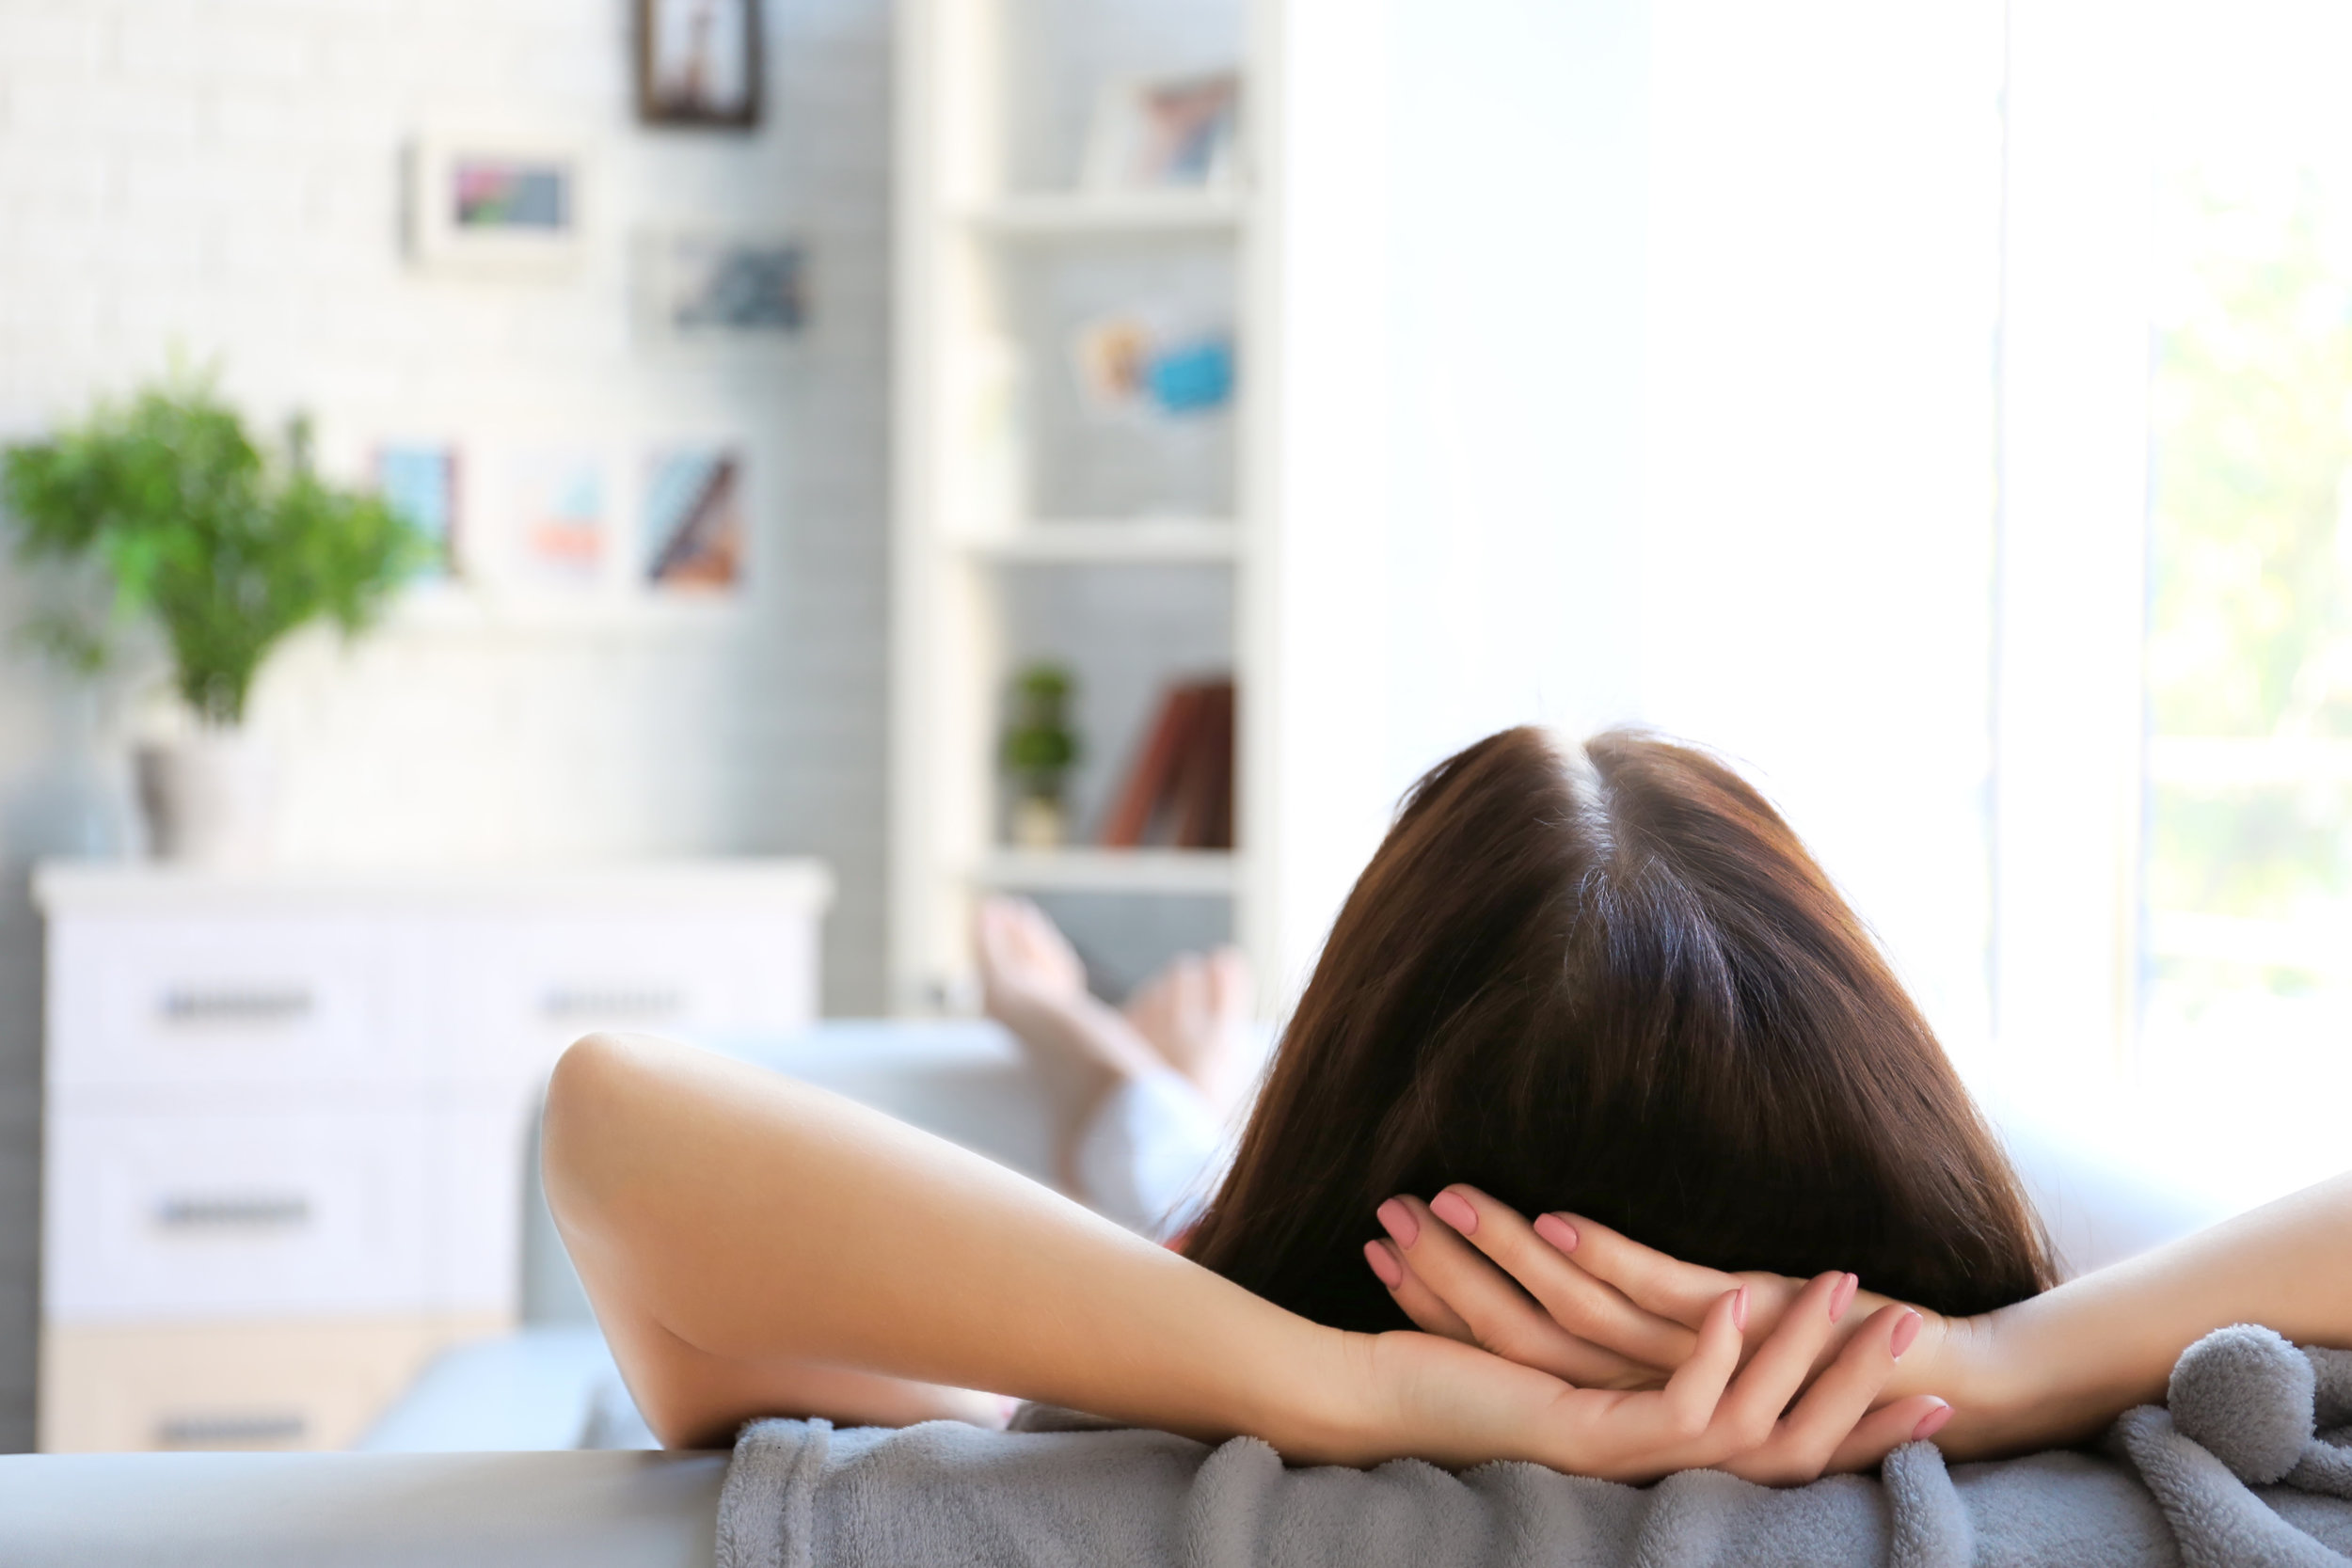 Relax at Home - making your home a restful place — Judy Winslow